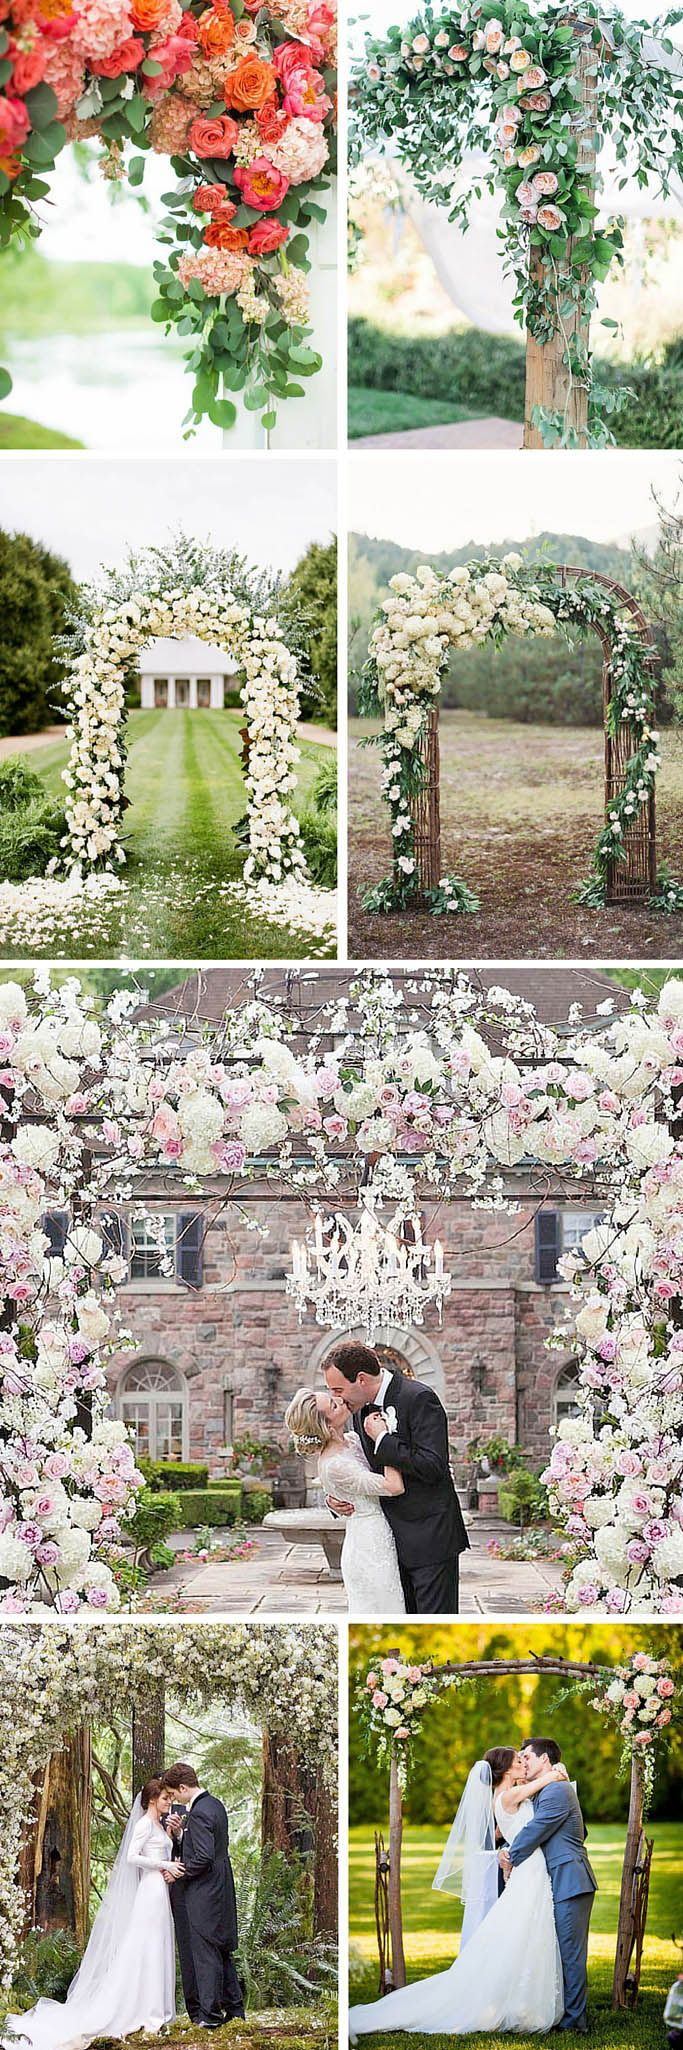 Best 25 arches ideas on pinterest outdoor weddings for Arches decoration ideas